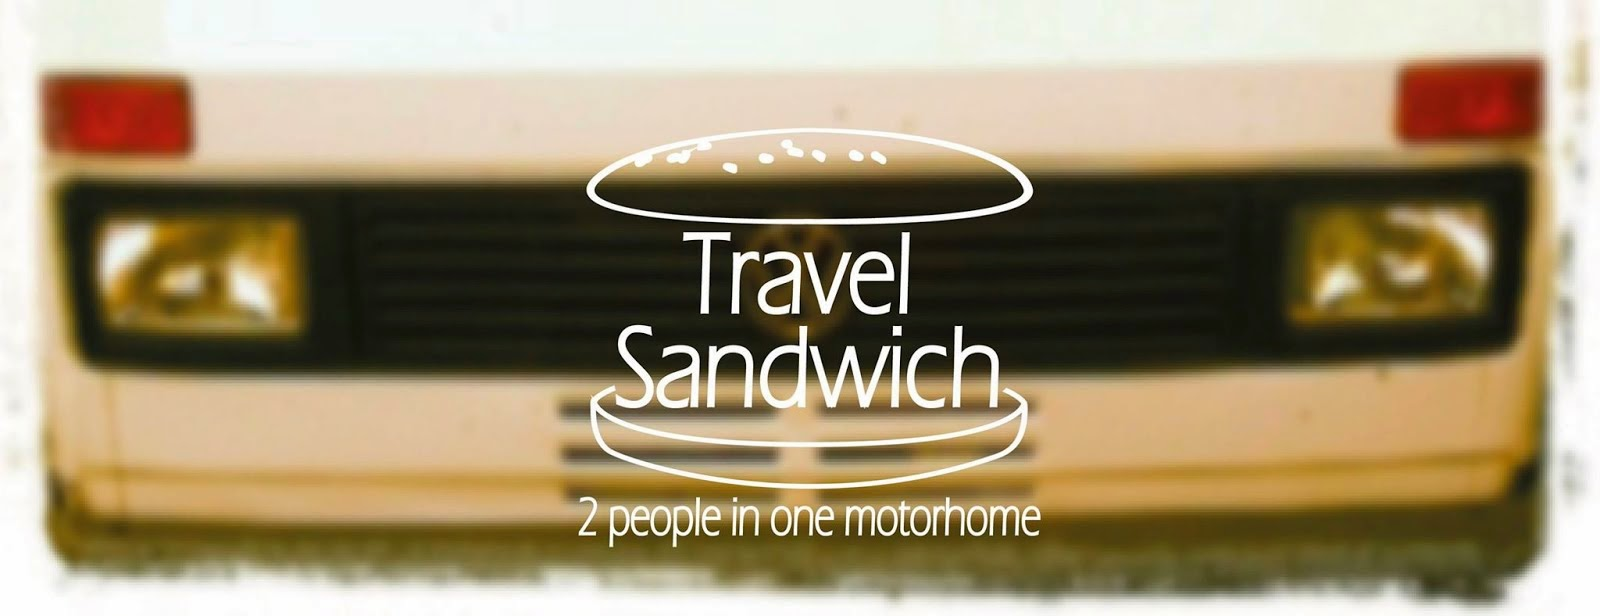 Travel Sandwich